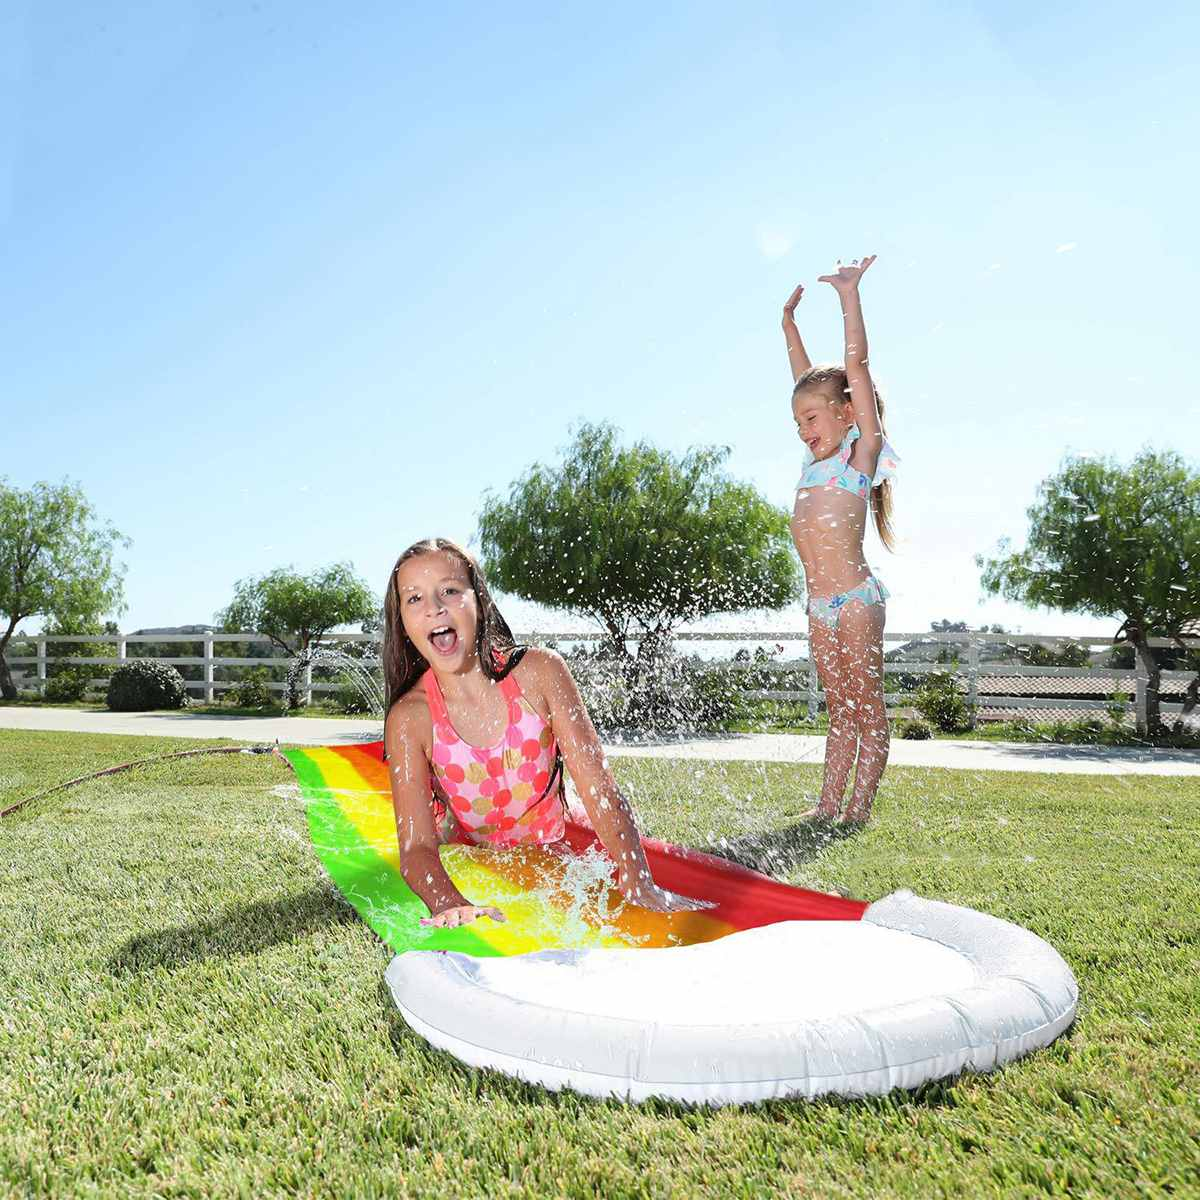 NEW Giant Surf Water Slide Fun Lawn Water Slides Pools For Kids Summer PVC Games Center Backyard Outdoor Children Adult Toys